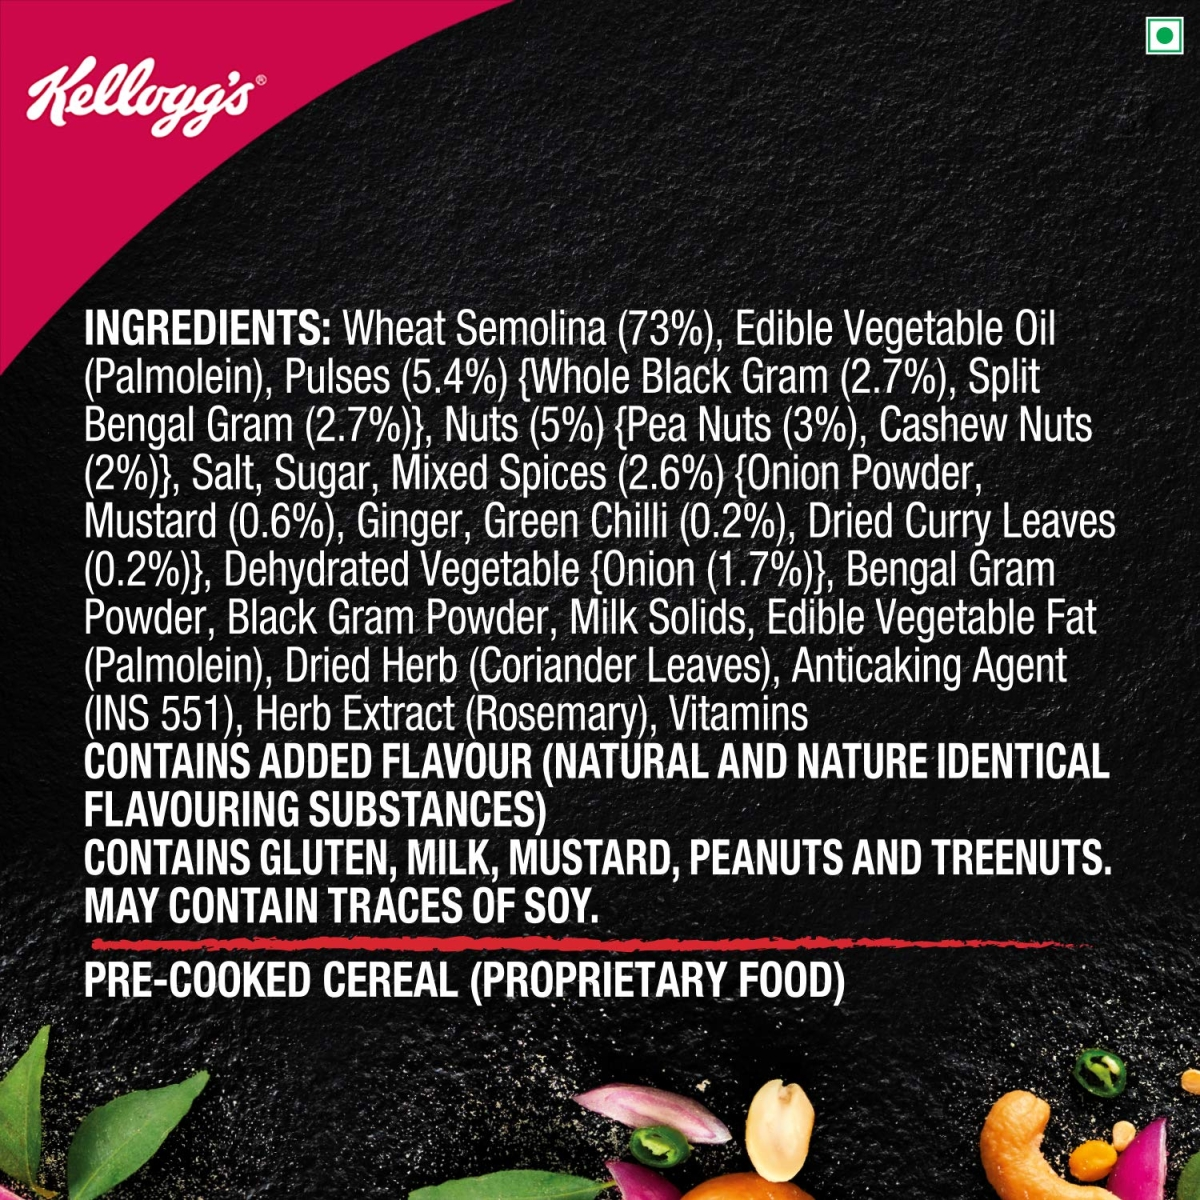 After corn flakes, chocos, oats and muesli, Kellogg's goes the upma way…